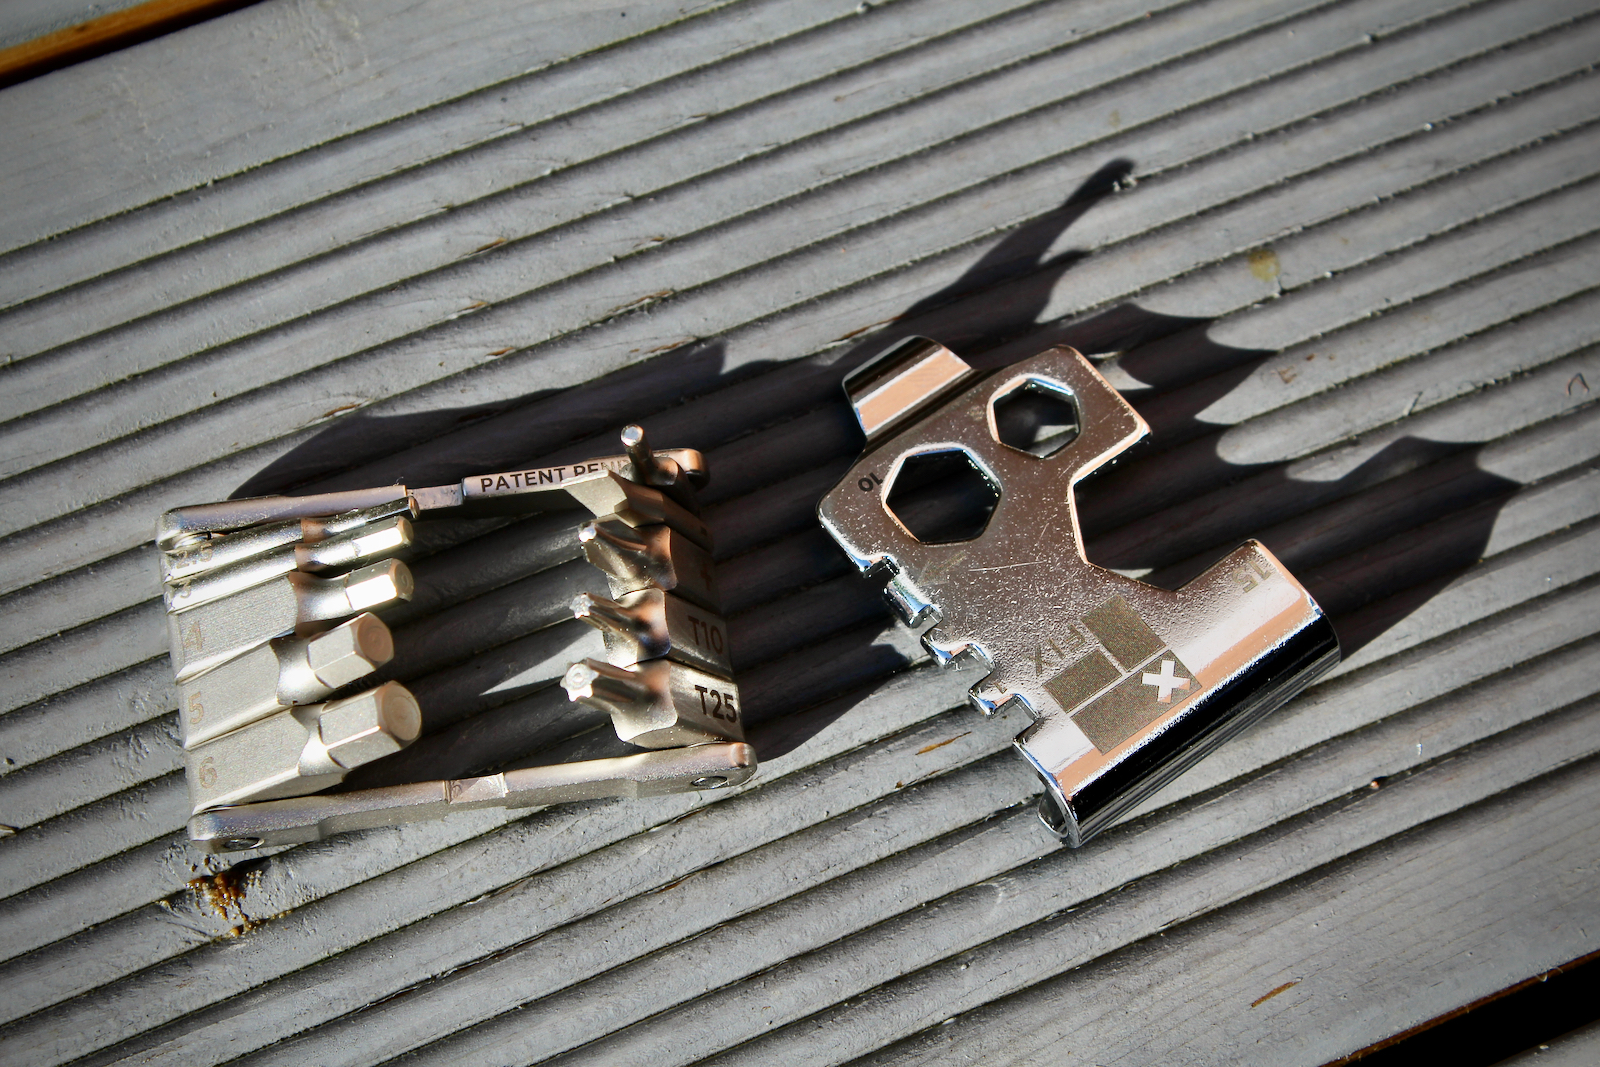 Fix MFG Wheelie Wrench Multi-tool and Strap On Holster